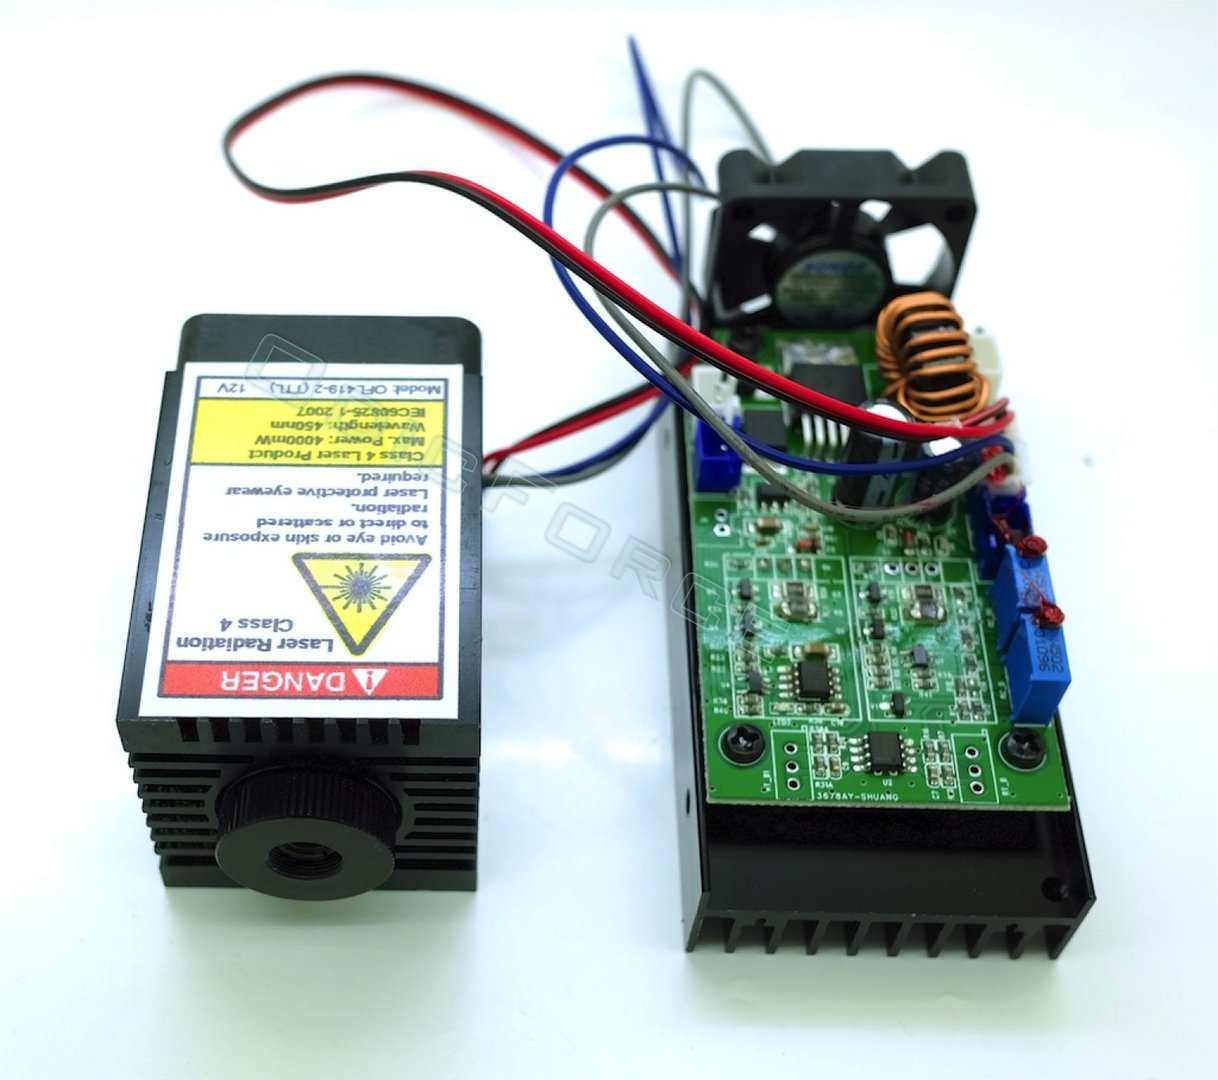 35w 450nm Blue Switchable Ttl Analogue Laser Module Adjustable Power Supply Monitor For Focus 12v Cnc